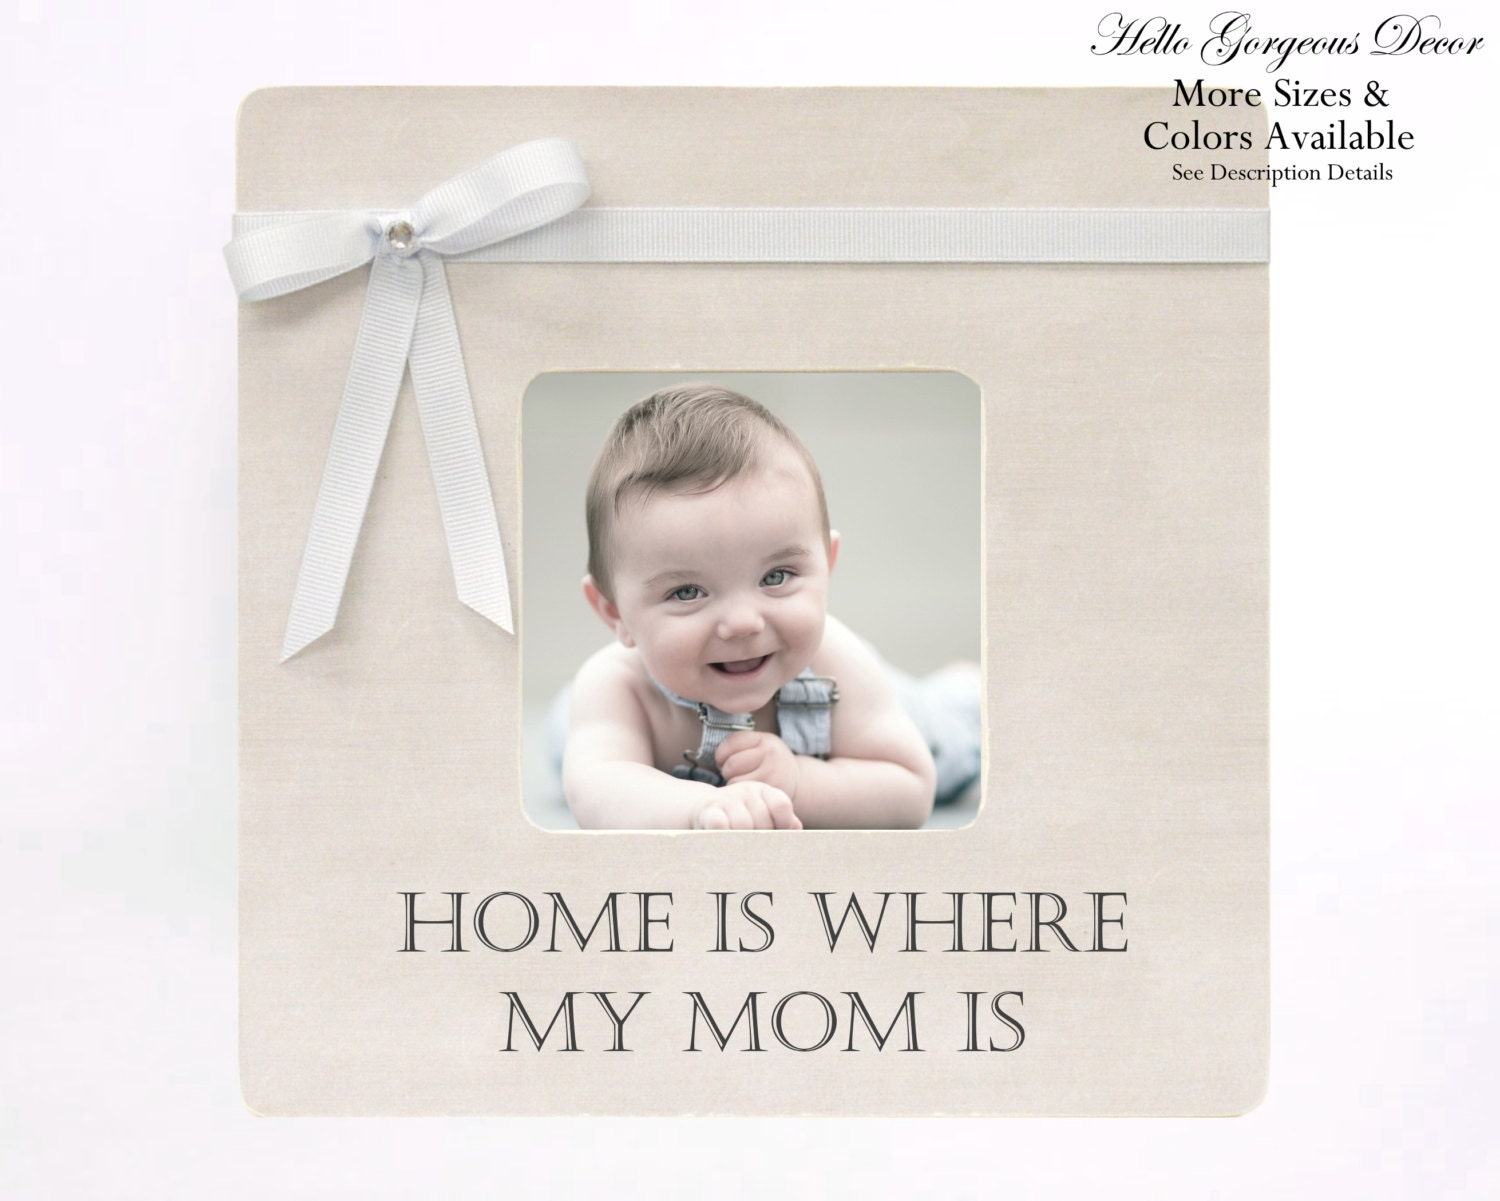 Baby Shower Gift Picture Frame Boy New Expecting Mother Mom Photo Frame Present From Kids Son Nursery Decor Ideas Home Is Where My Mom Is